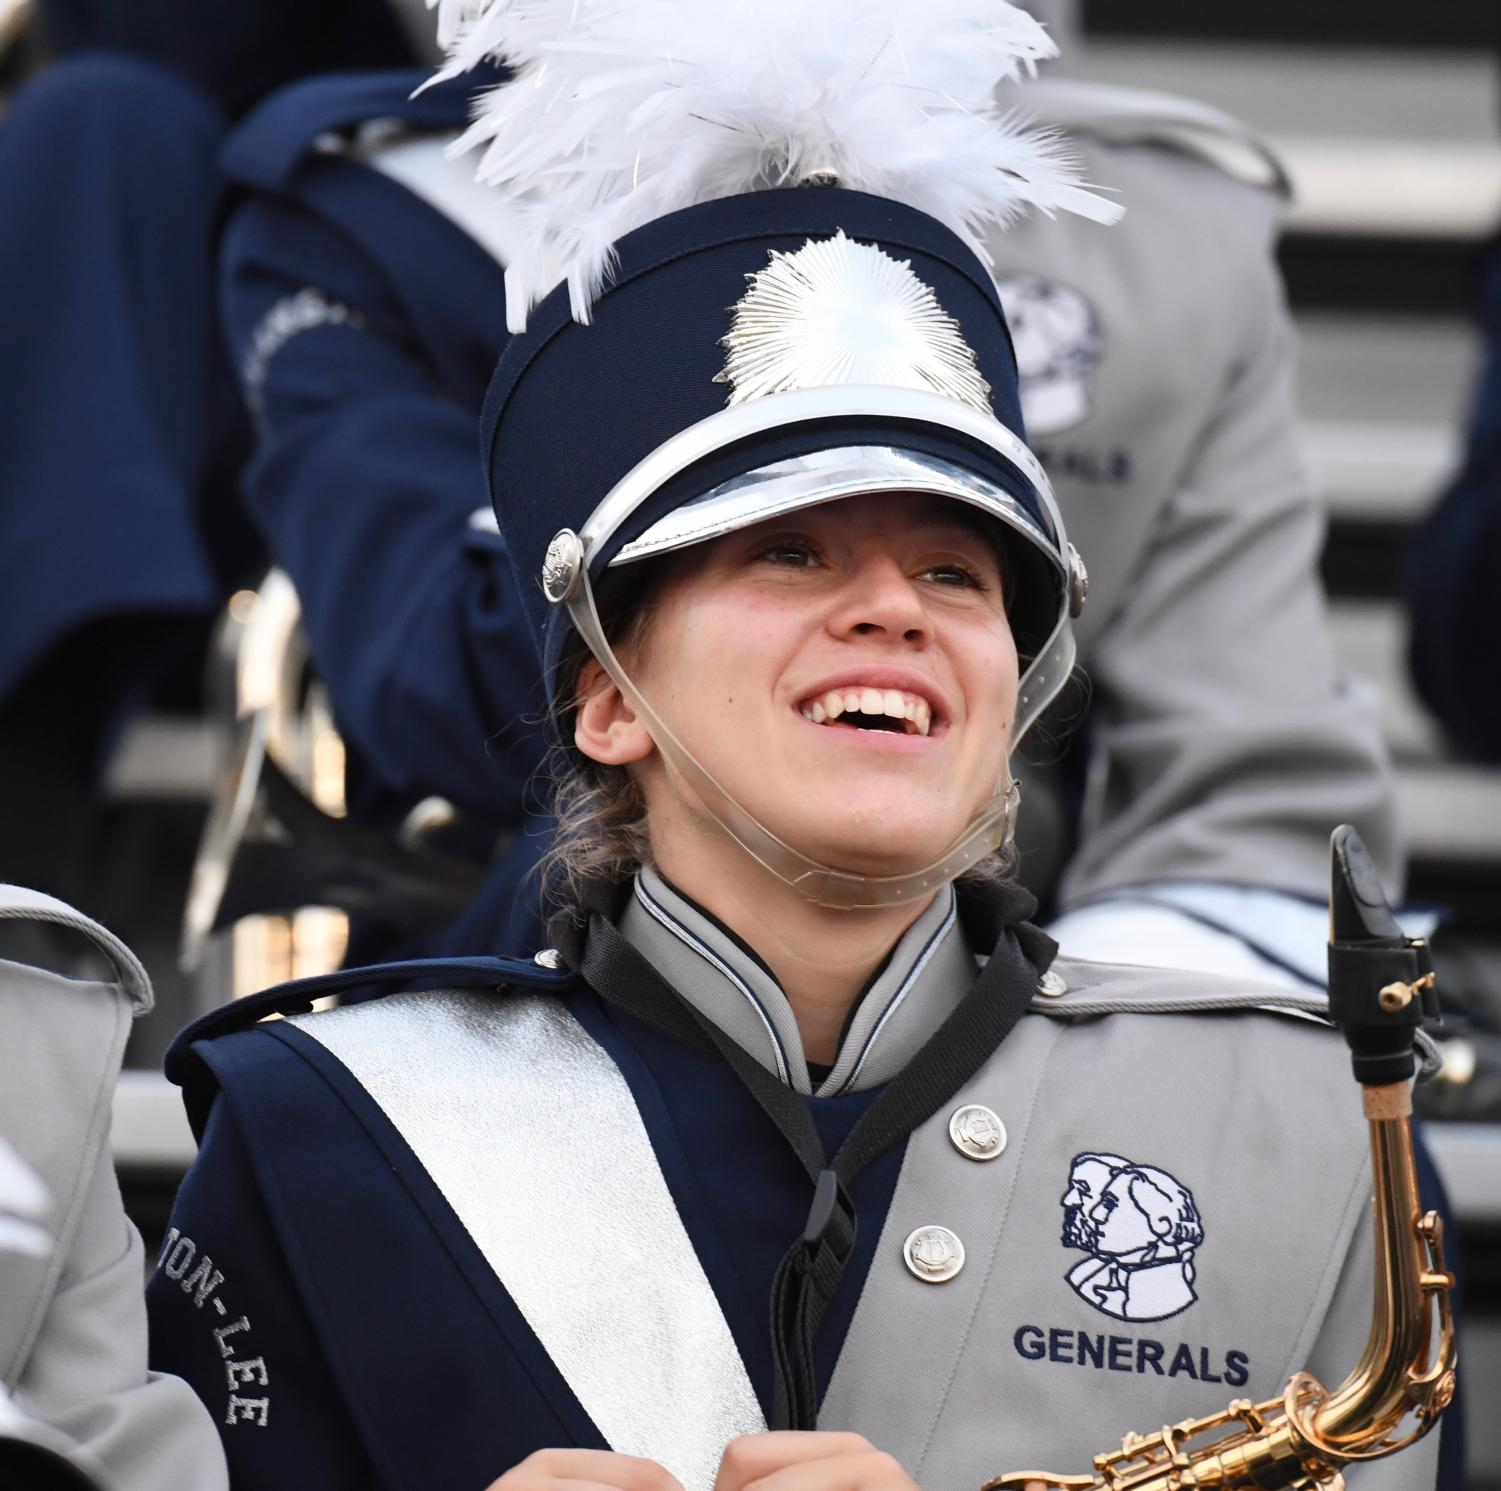 Senior CeCe Collinson smiles at the camera while sitting in the stands with the rest of the marching band.